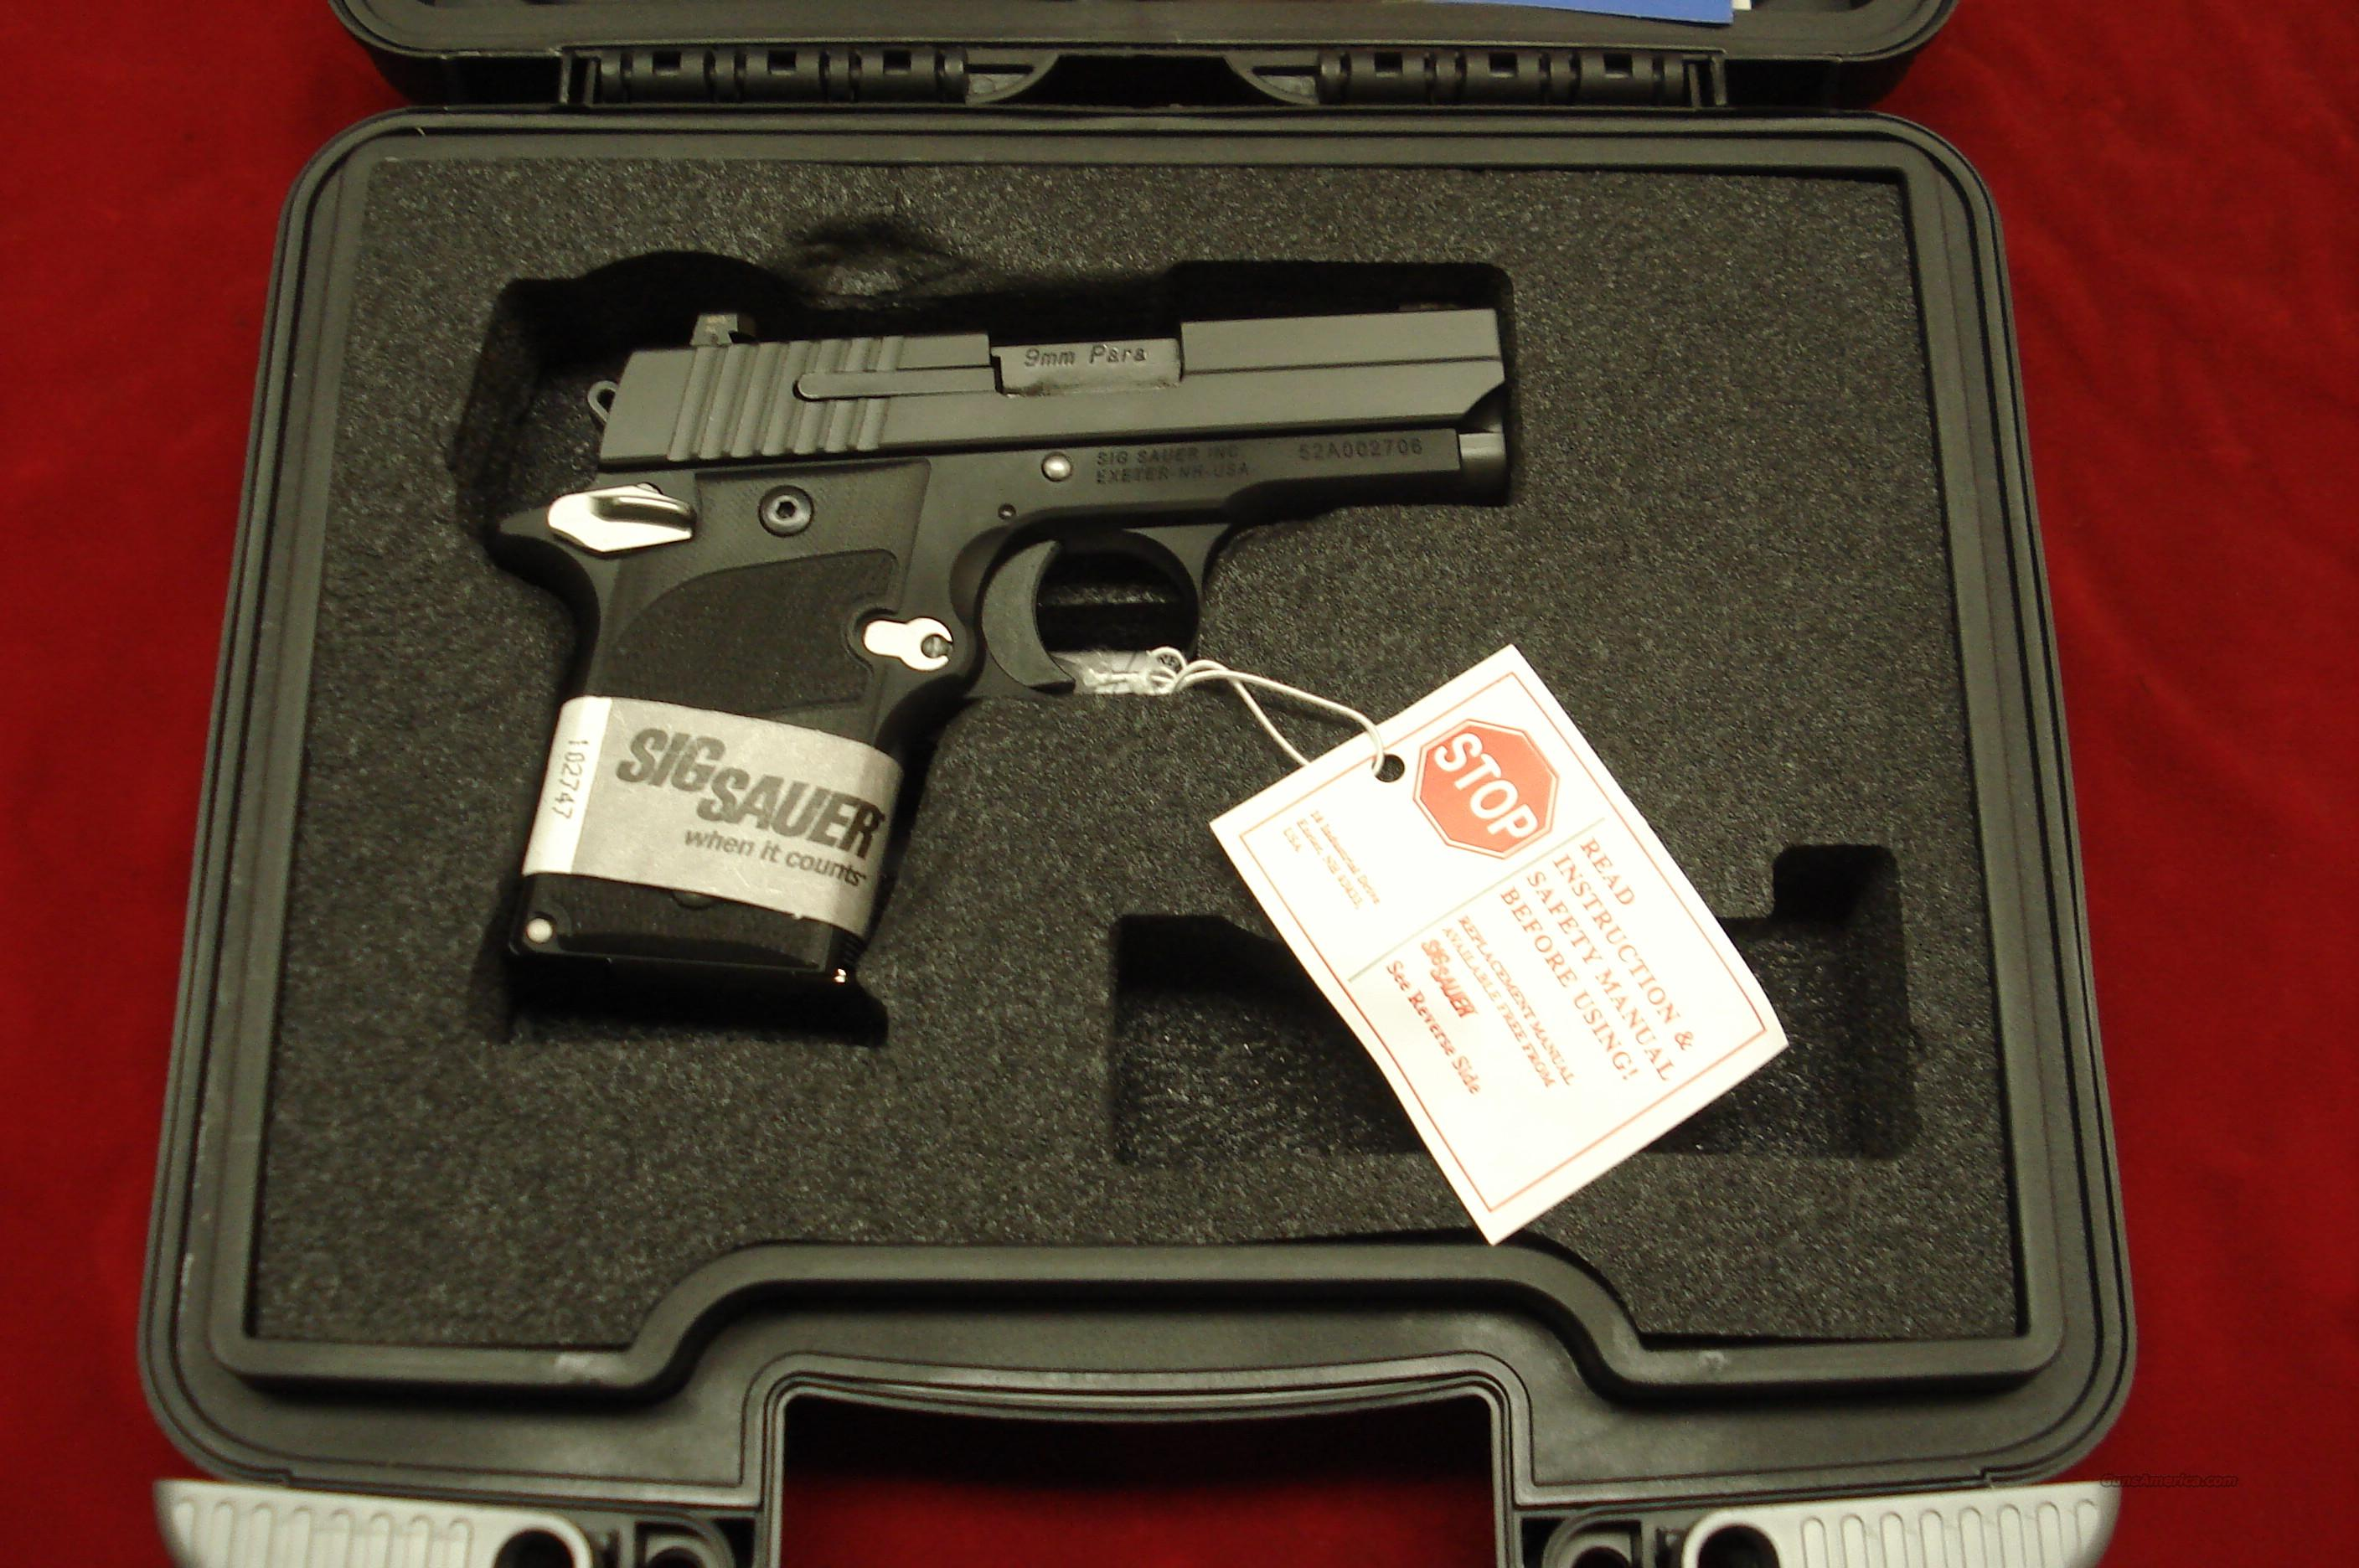 SIG SAUER 938 NIGHTMARE 9MM W/NIGHT SIGHTS  NEW  Guns > Pistols > Sig - Sauer/Sigarms Pistols > Other